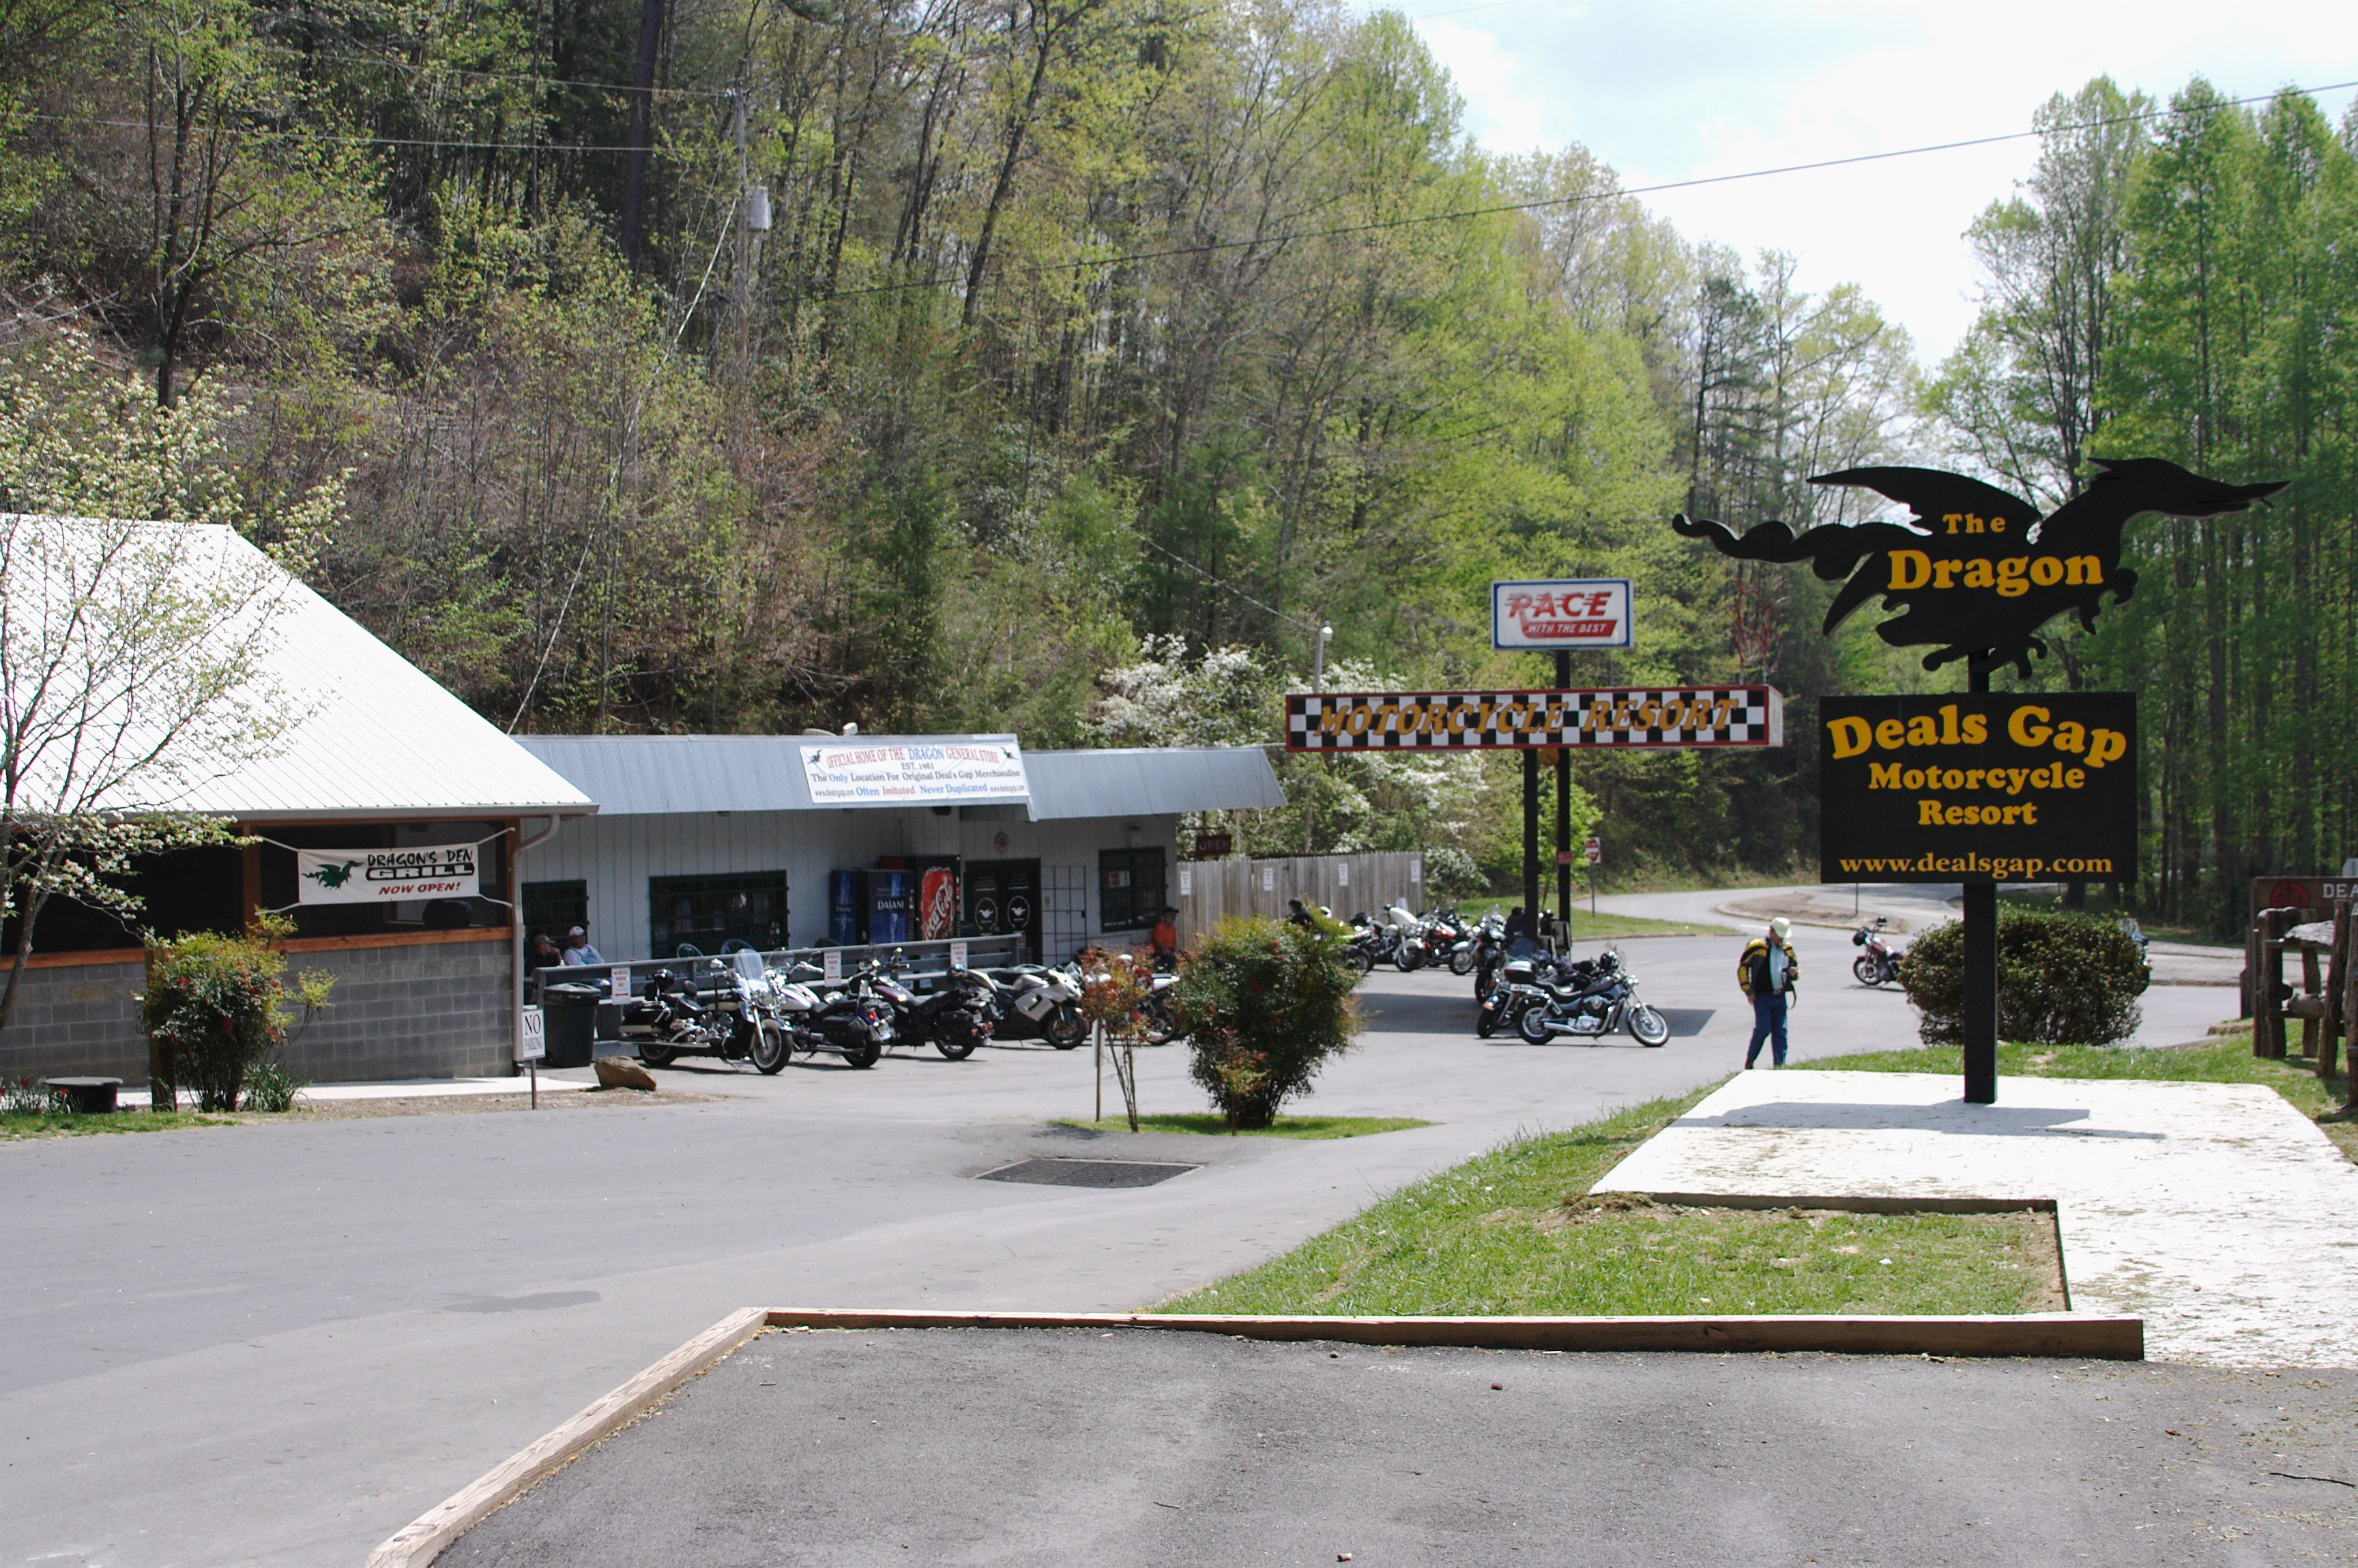 File Deal S Gap Motorcycle Resort Nc Parking Lot Sign Jpg Wikimedia Commons